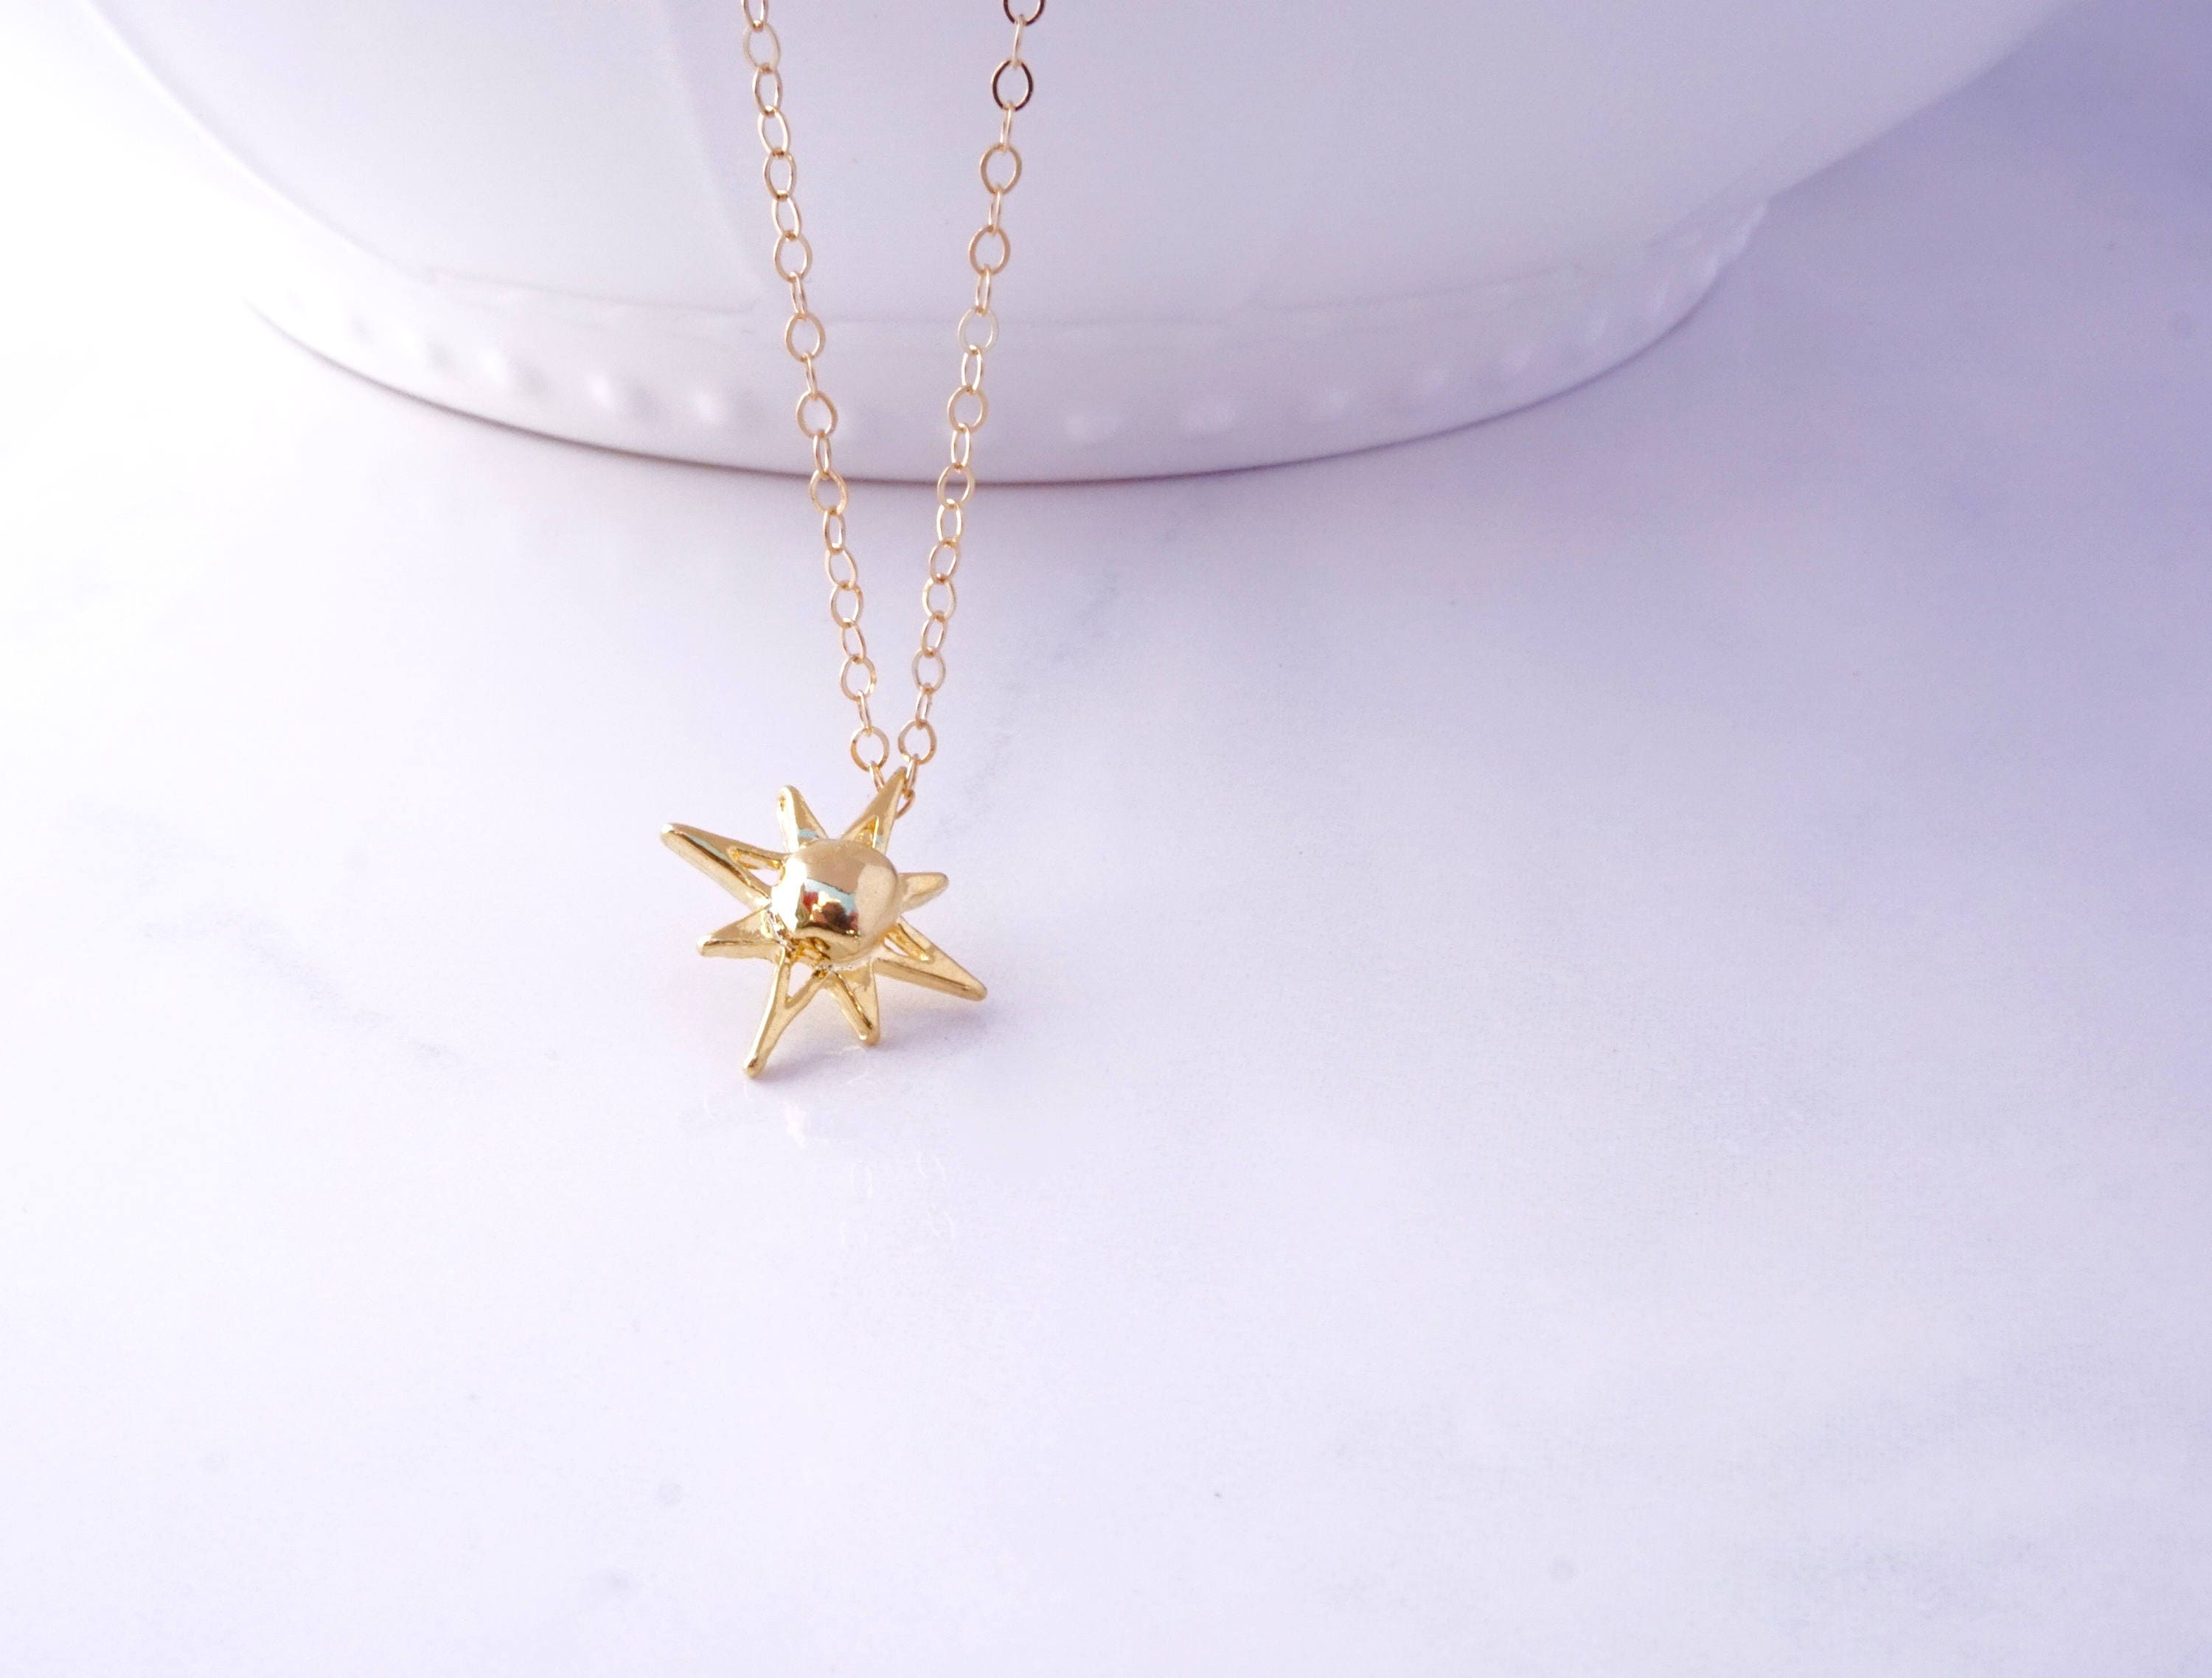 pendant north long gold diamonds men angle star and image product jewellery for northstar collection with chain up